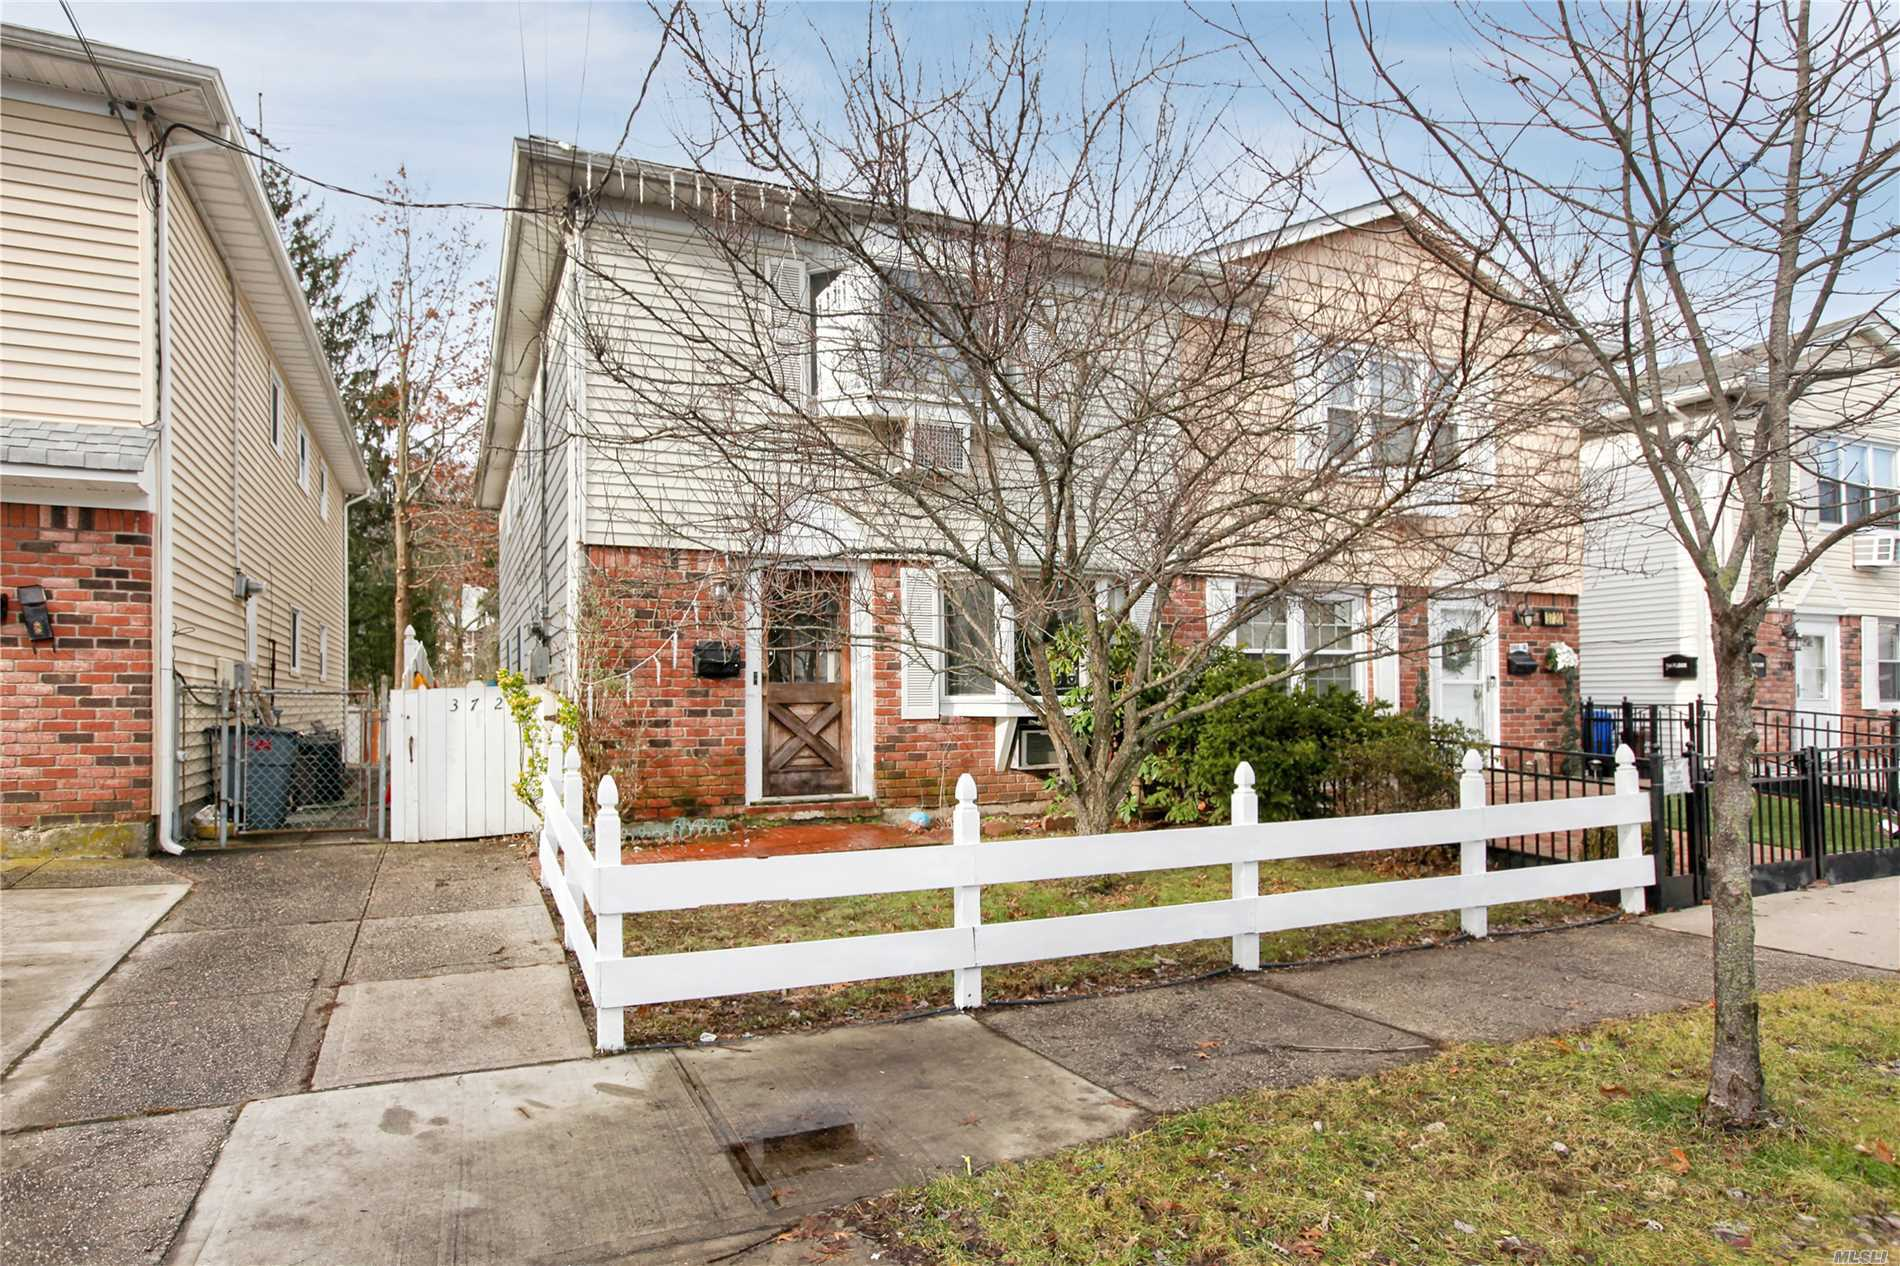 This Semi-Detached 2 Family Brick And Siding Home Features Bay Windows, Spacious Rooms, Oak And Marble Flooring, 8 Year Young Heating System & Freshly Painted. Enjoy The Summer With A Heated Above Ground Pool. All This Located In The Heart Of Little-Neck Near The Long Island Rail Road..The Home Located On A Prime Street With Lots Of Privacy With Nature Preserve In Rear Yard. This Home Will Not Last For This Price In Such A Prime Location.